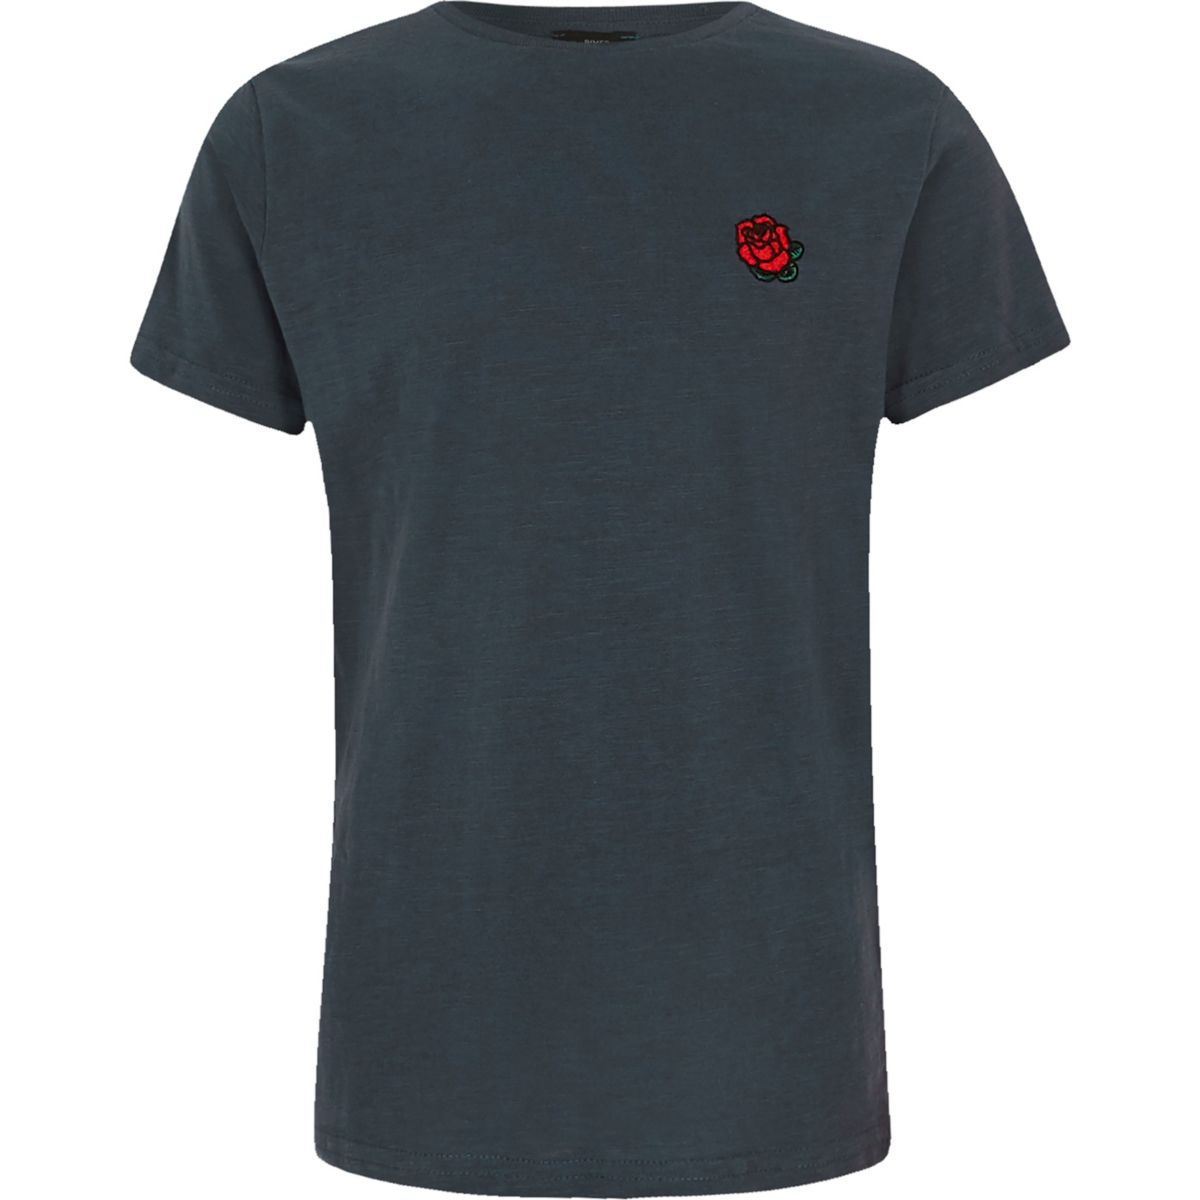 Boys navy rose embroidered T-shirt